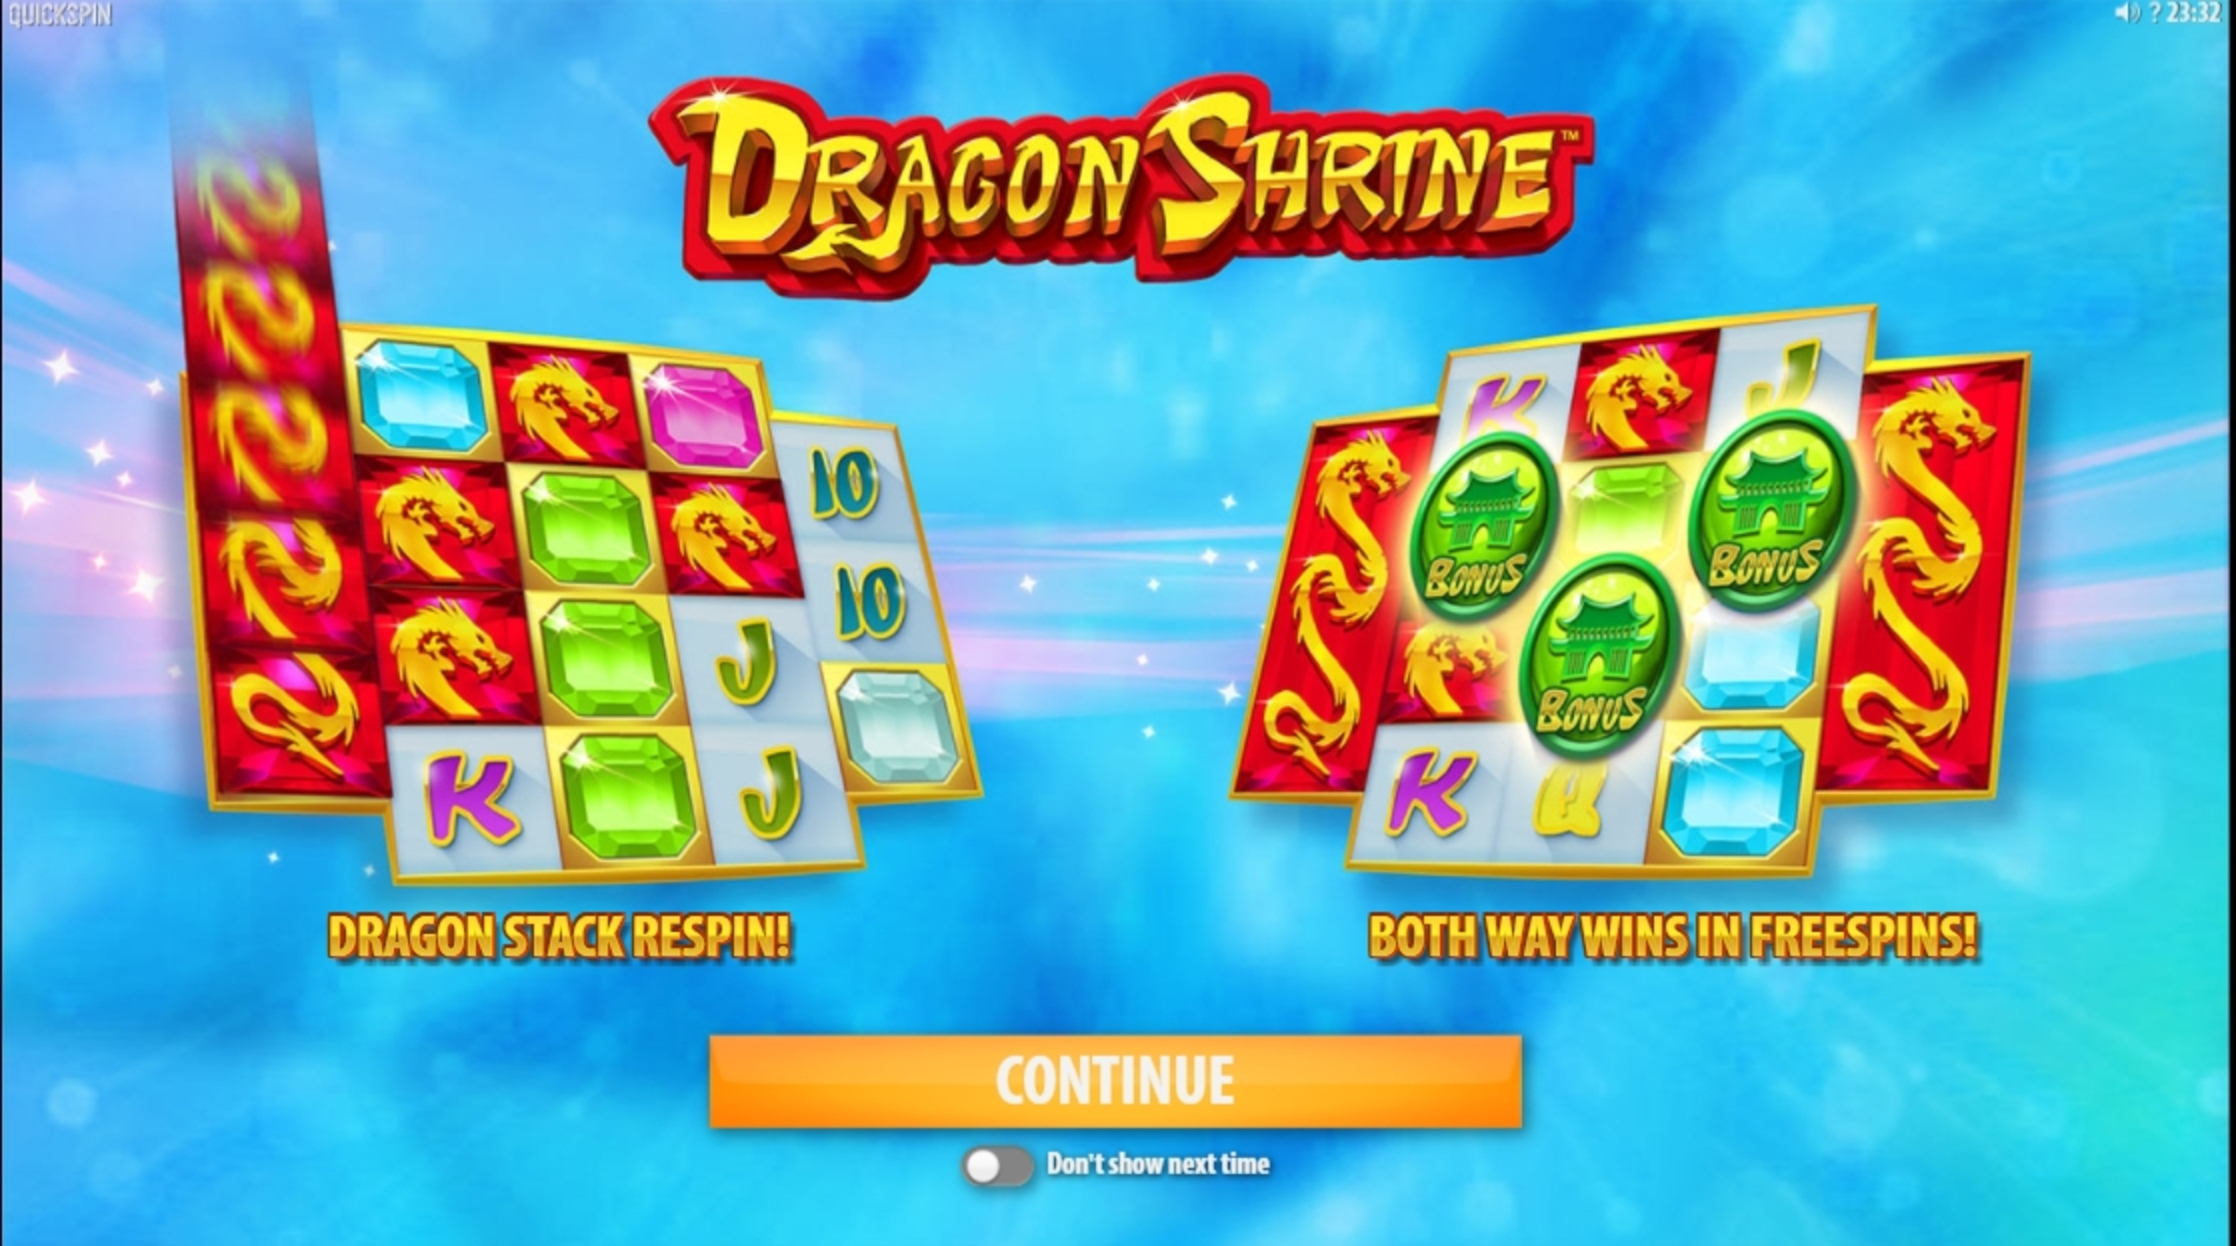 Play Dragon Shrine Free Casino Slot Game by Quickspin